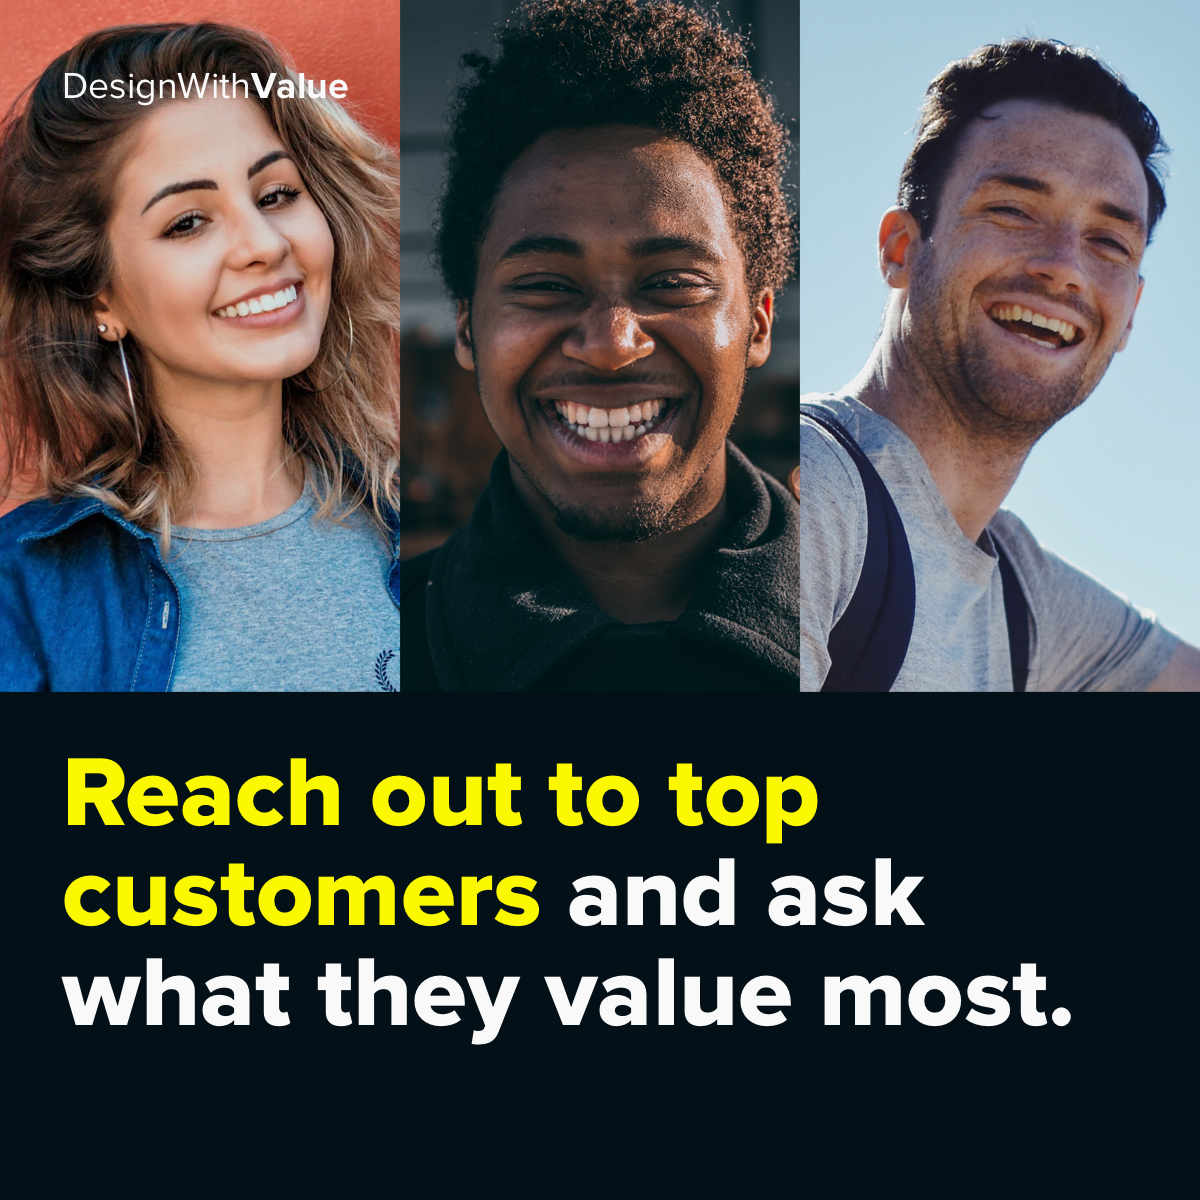 Reach out to top customers and ask what they value most.